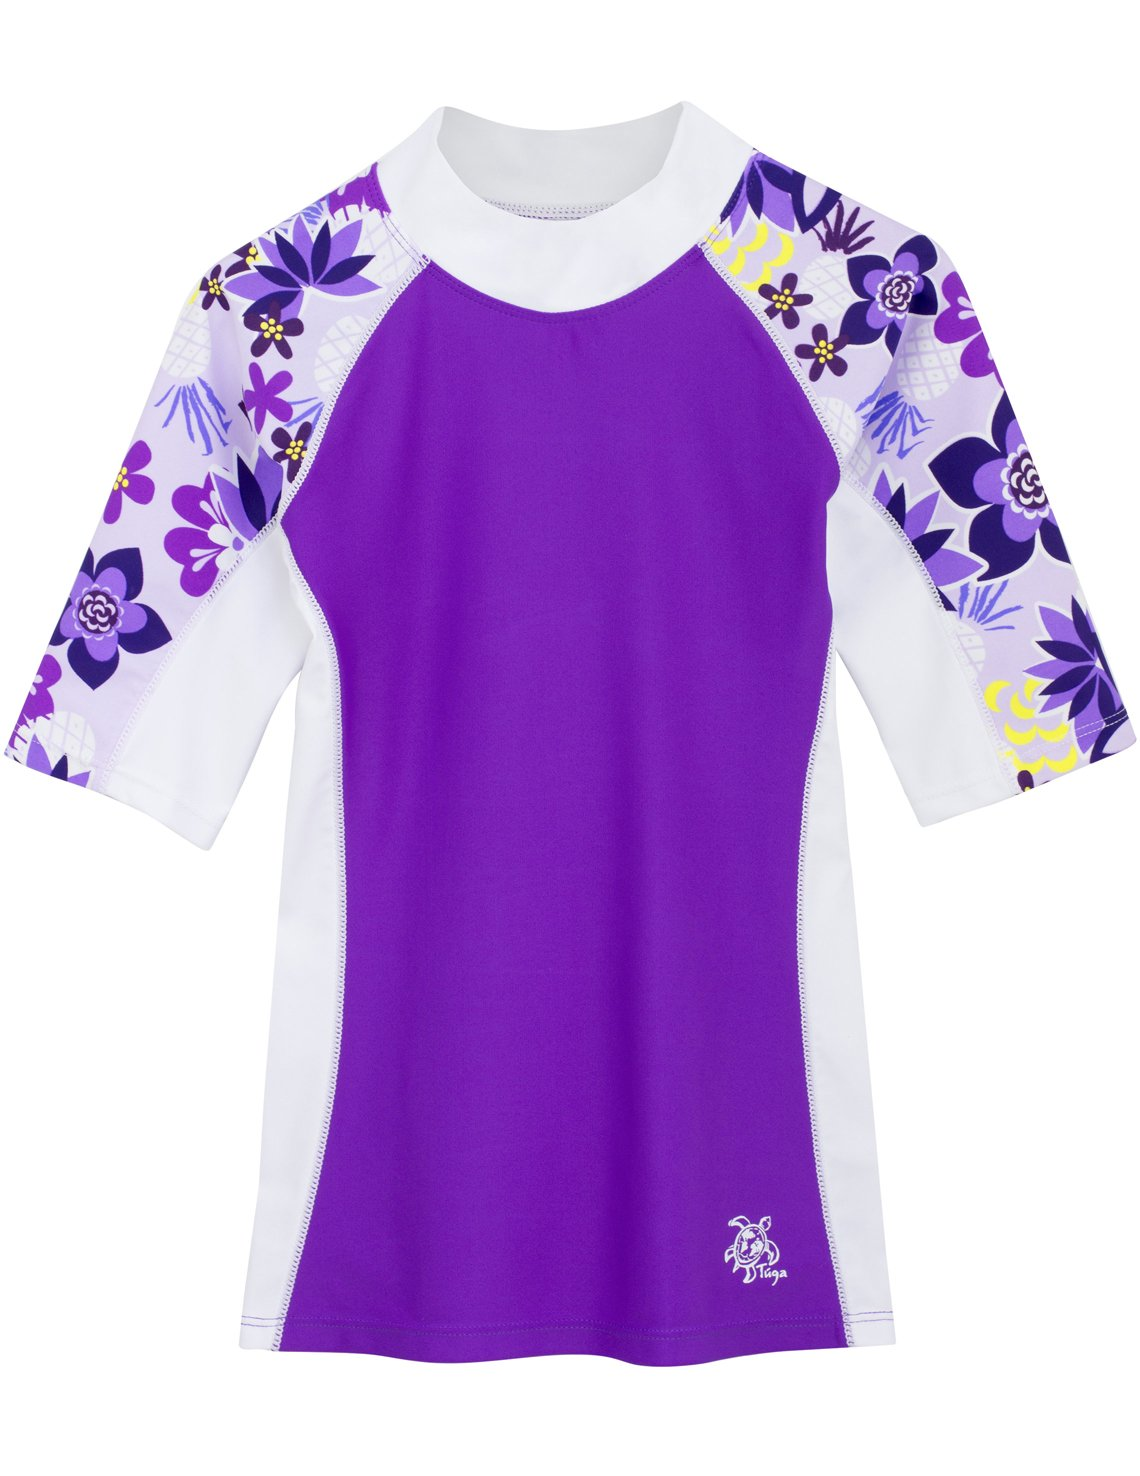 Girls Tuga Short Sleeve UV Swim Shirt Seaside Coral and Orchid 2-14 Years UPF50+ Sun Protection